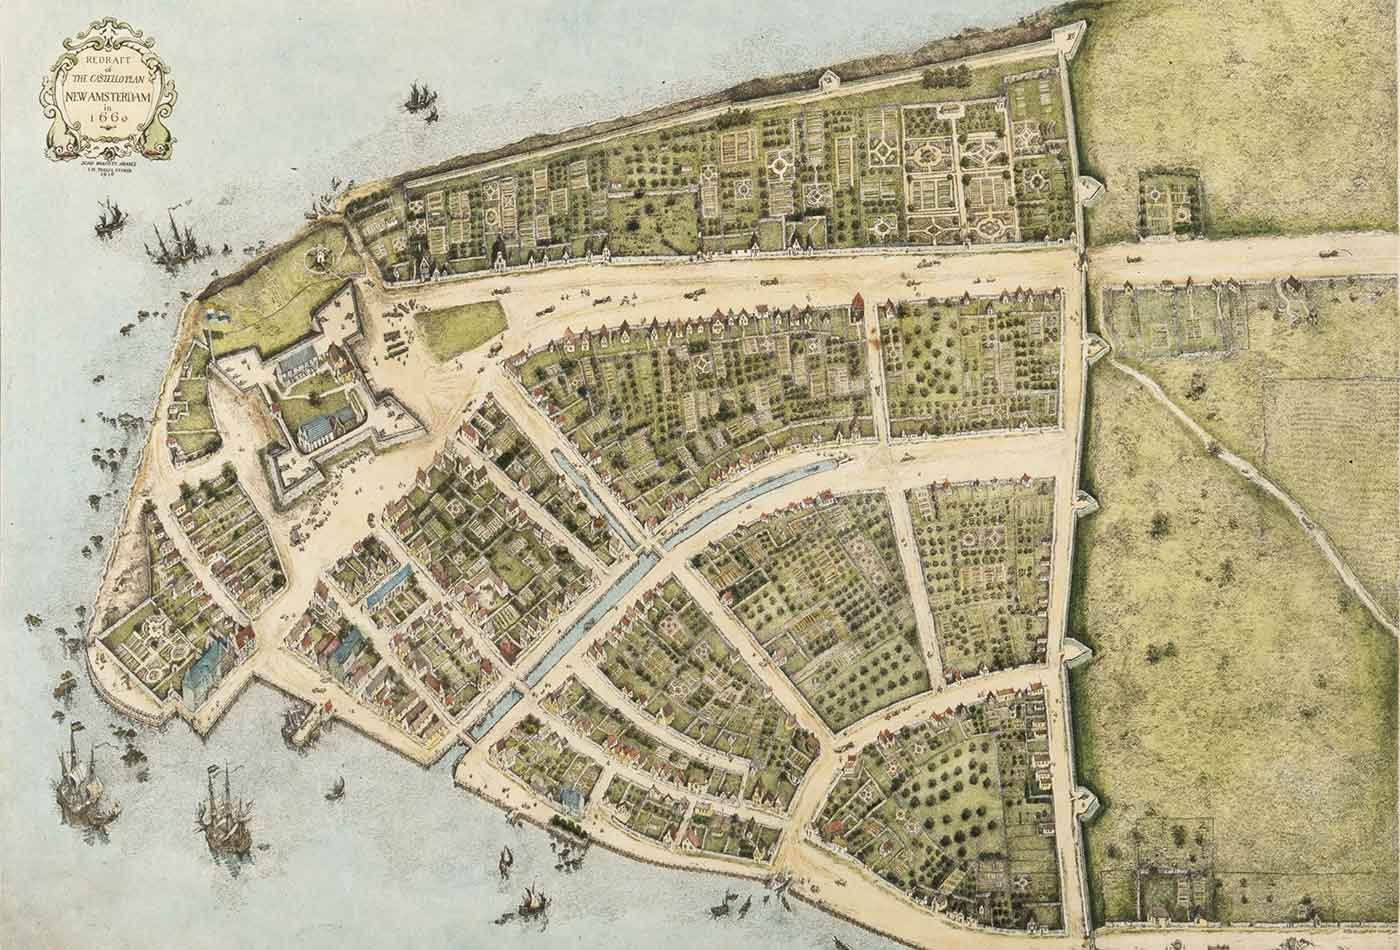 Redraft of the Castello Plan New Amsterdam in 1660.